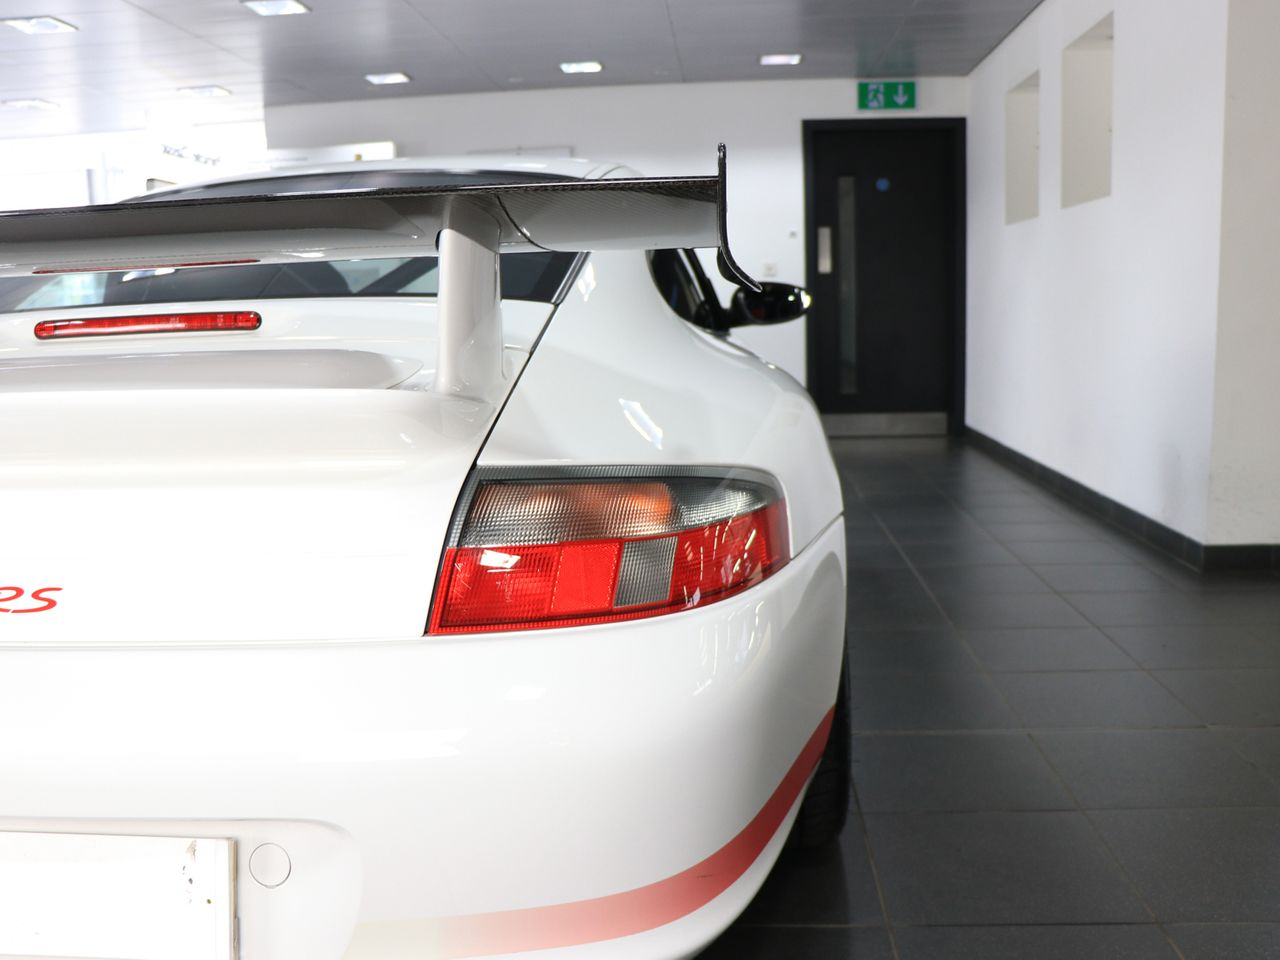 911 (996) GT3 RS image 45